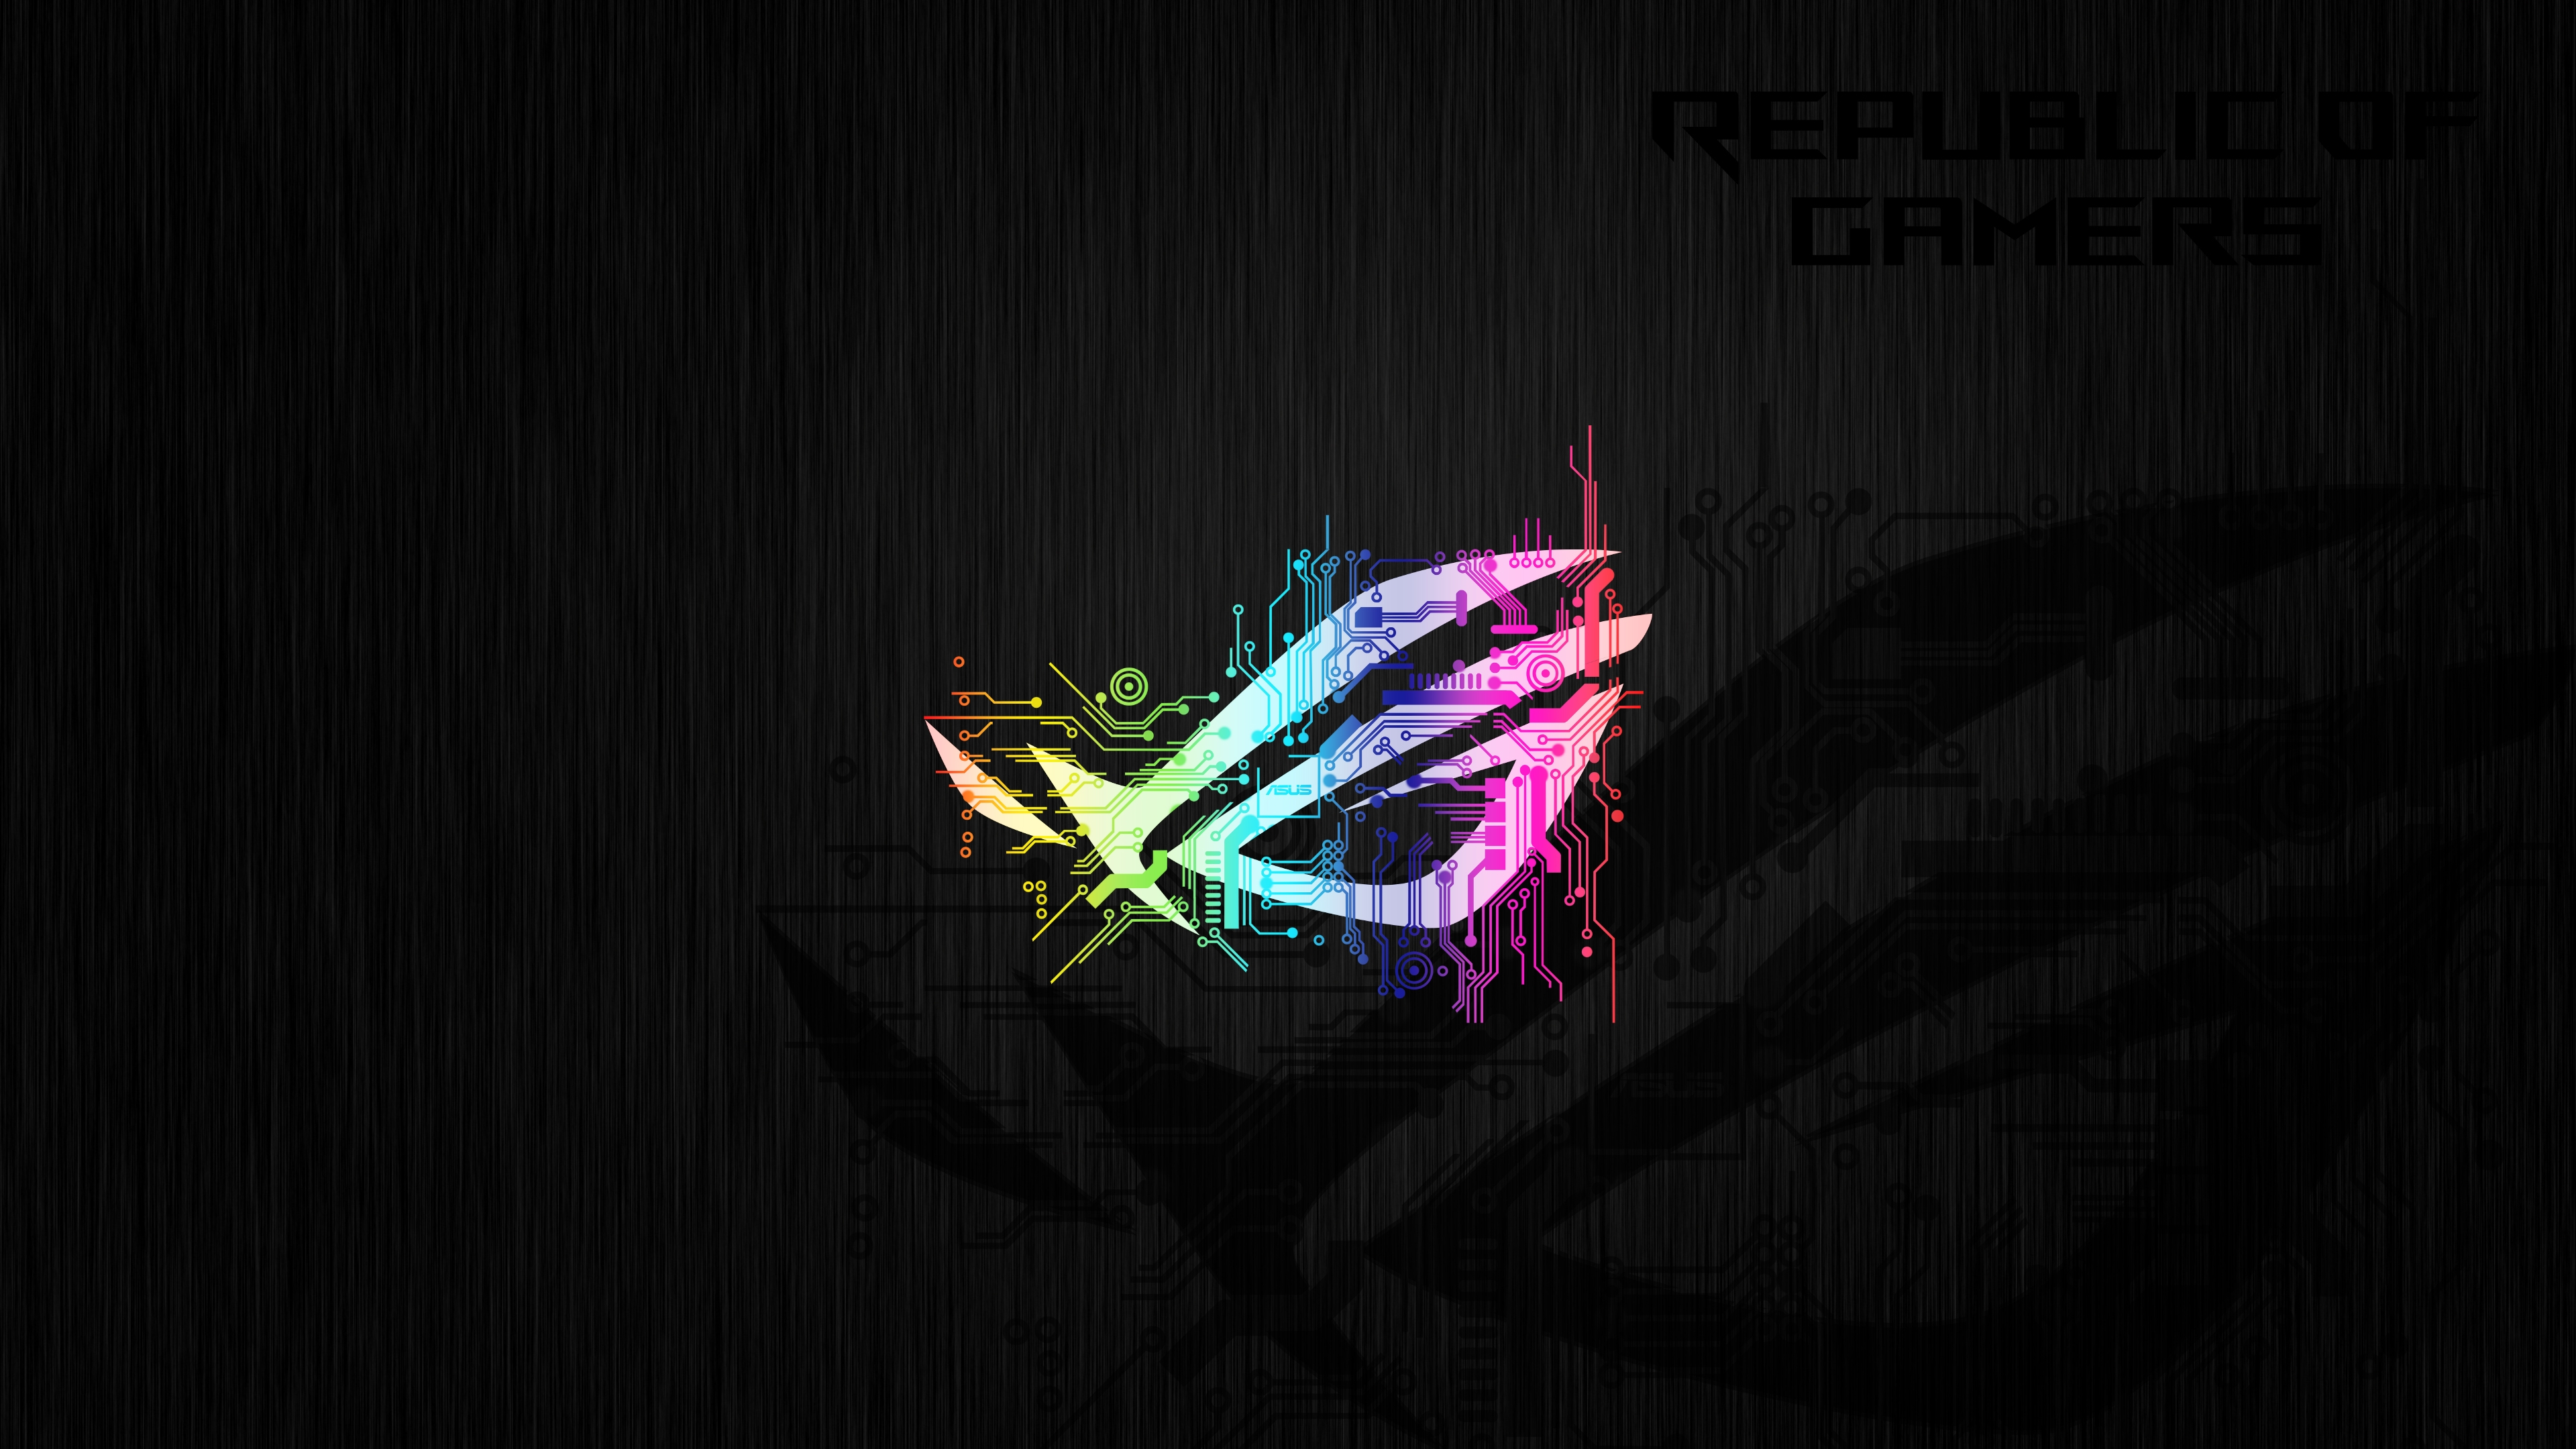 Download 1920x1080 Rog Asus Logo Republic Of Gamers Wallpapers For Widescreen Wallpapermaiden